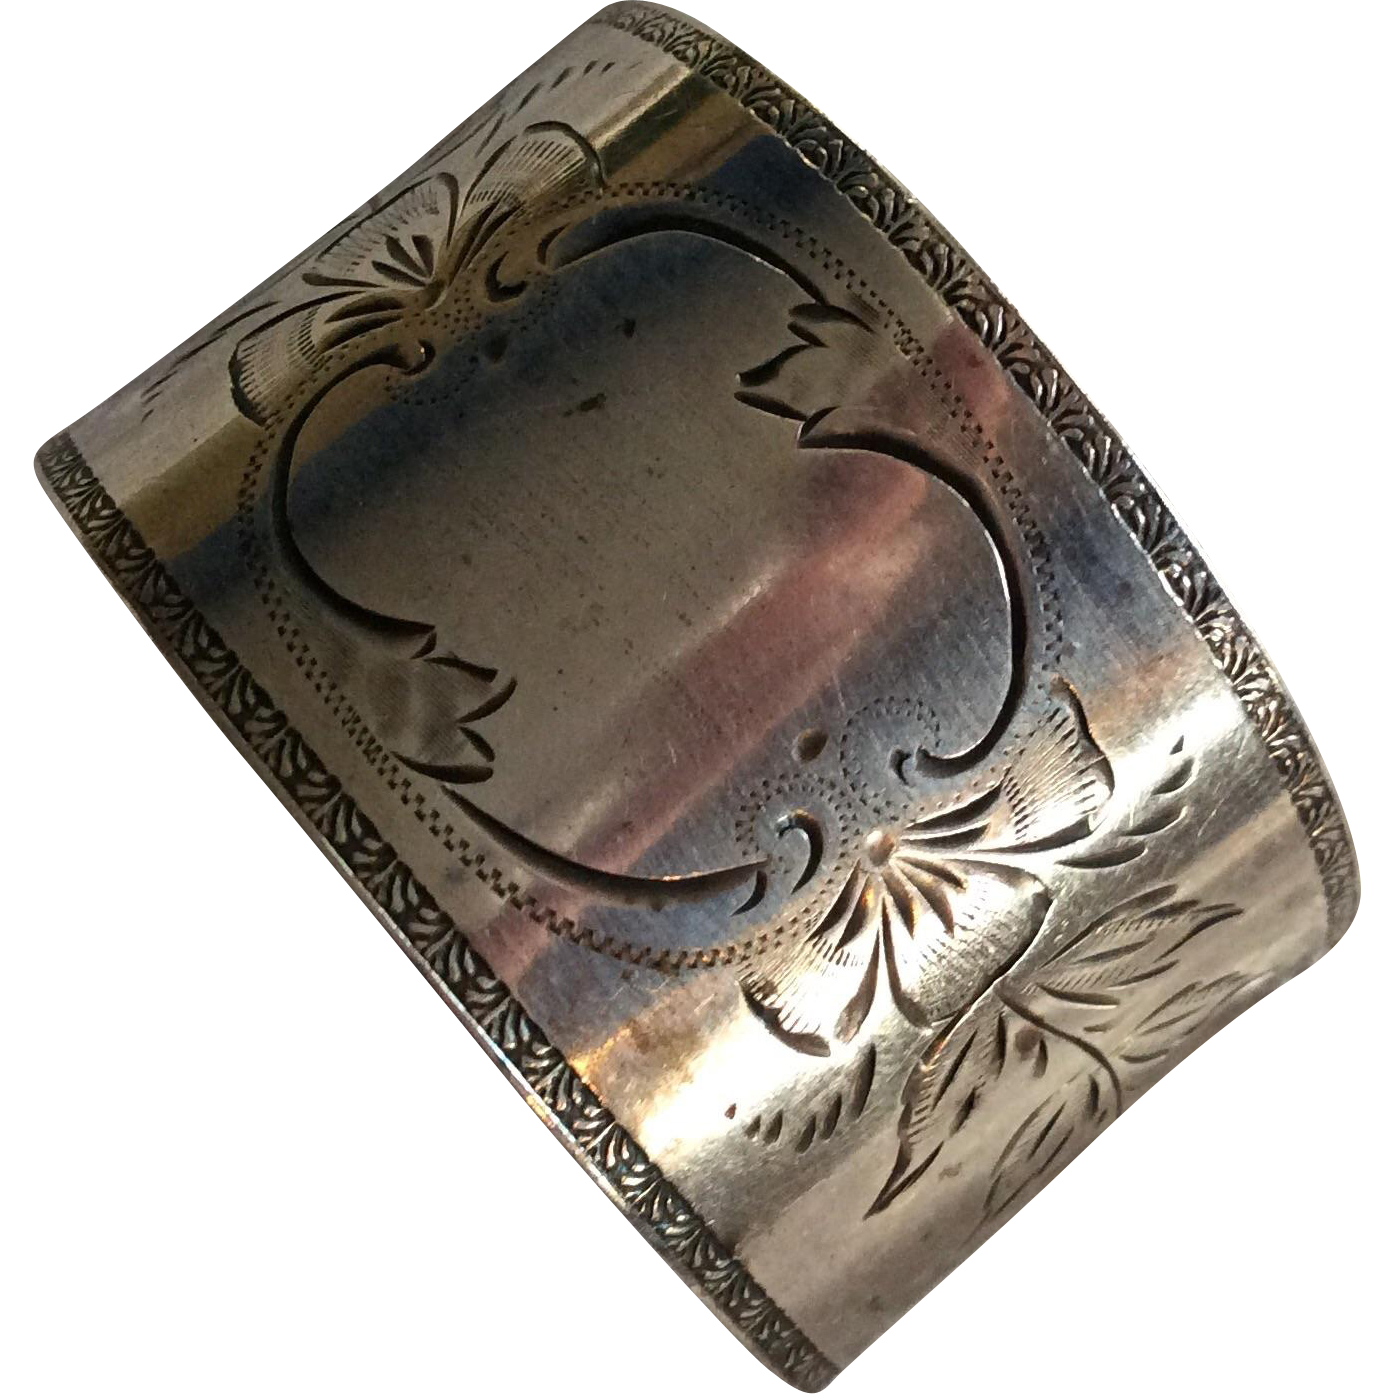 aesthetic engraved sterling silver napkin ring by frank